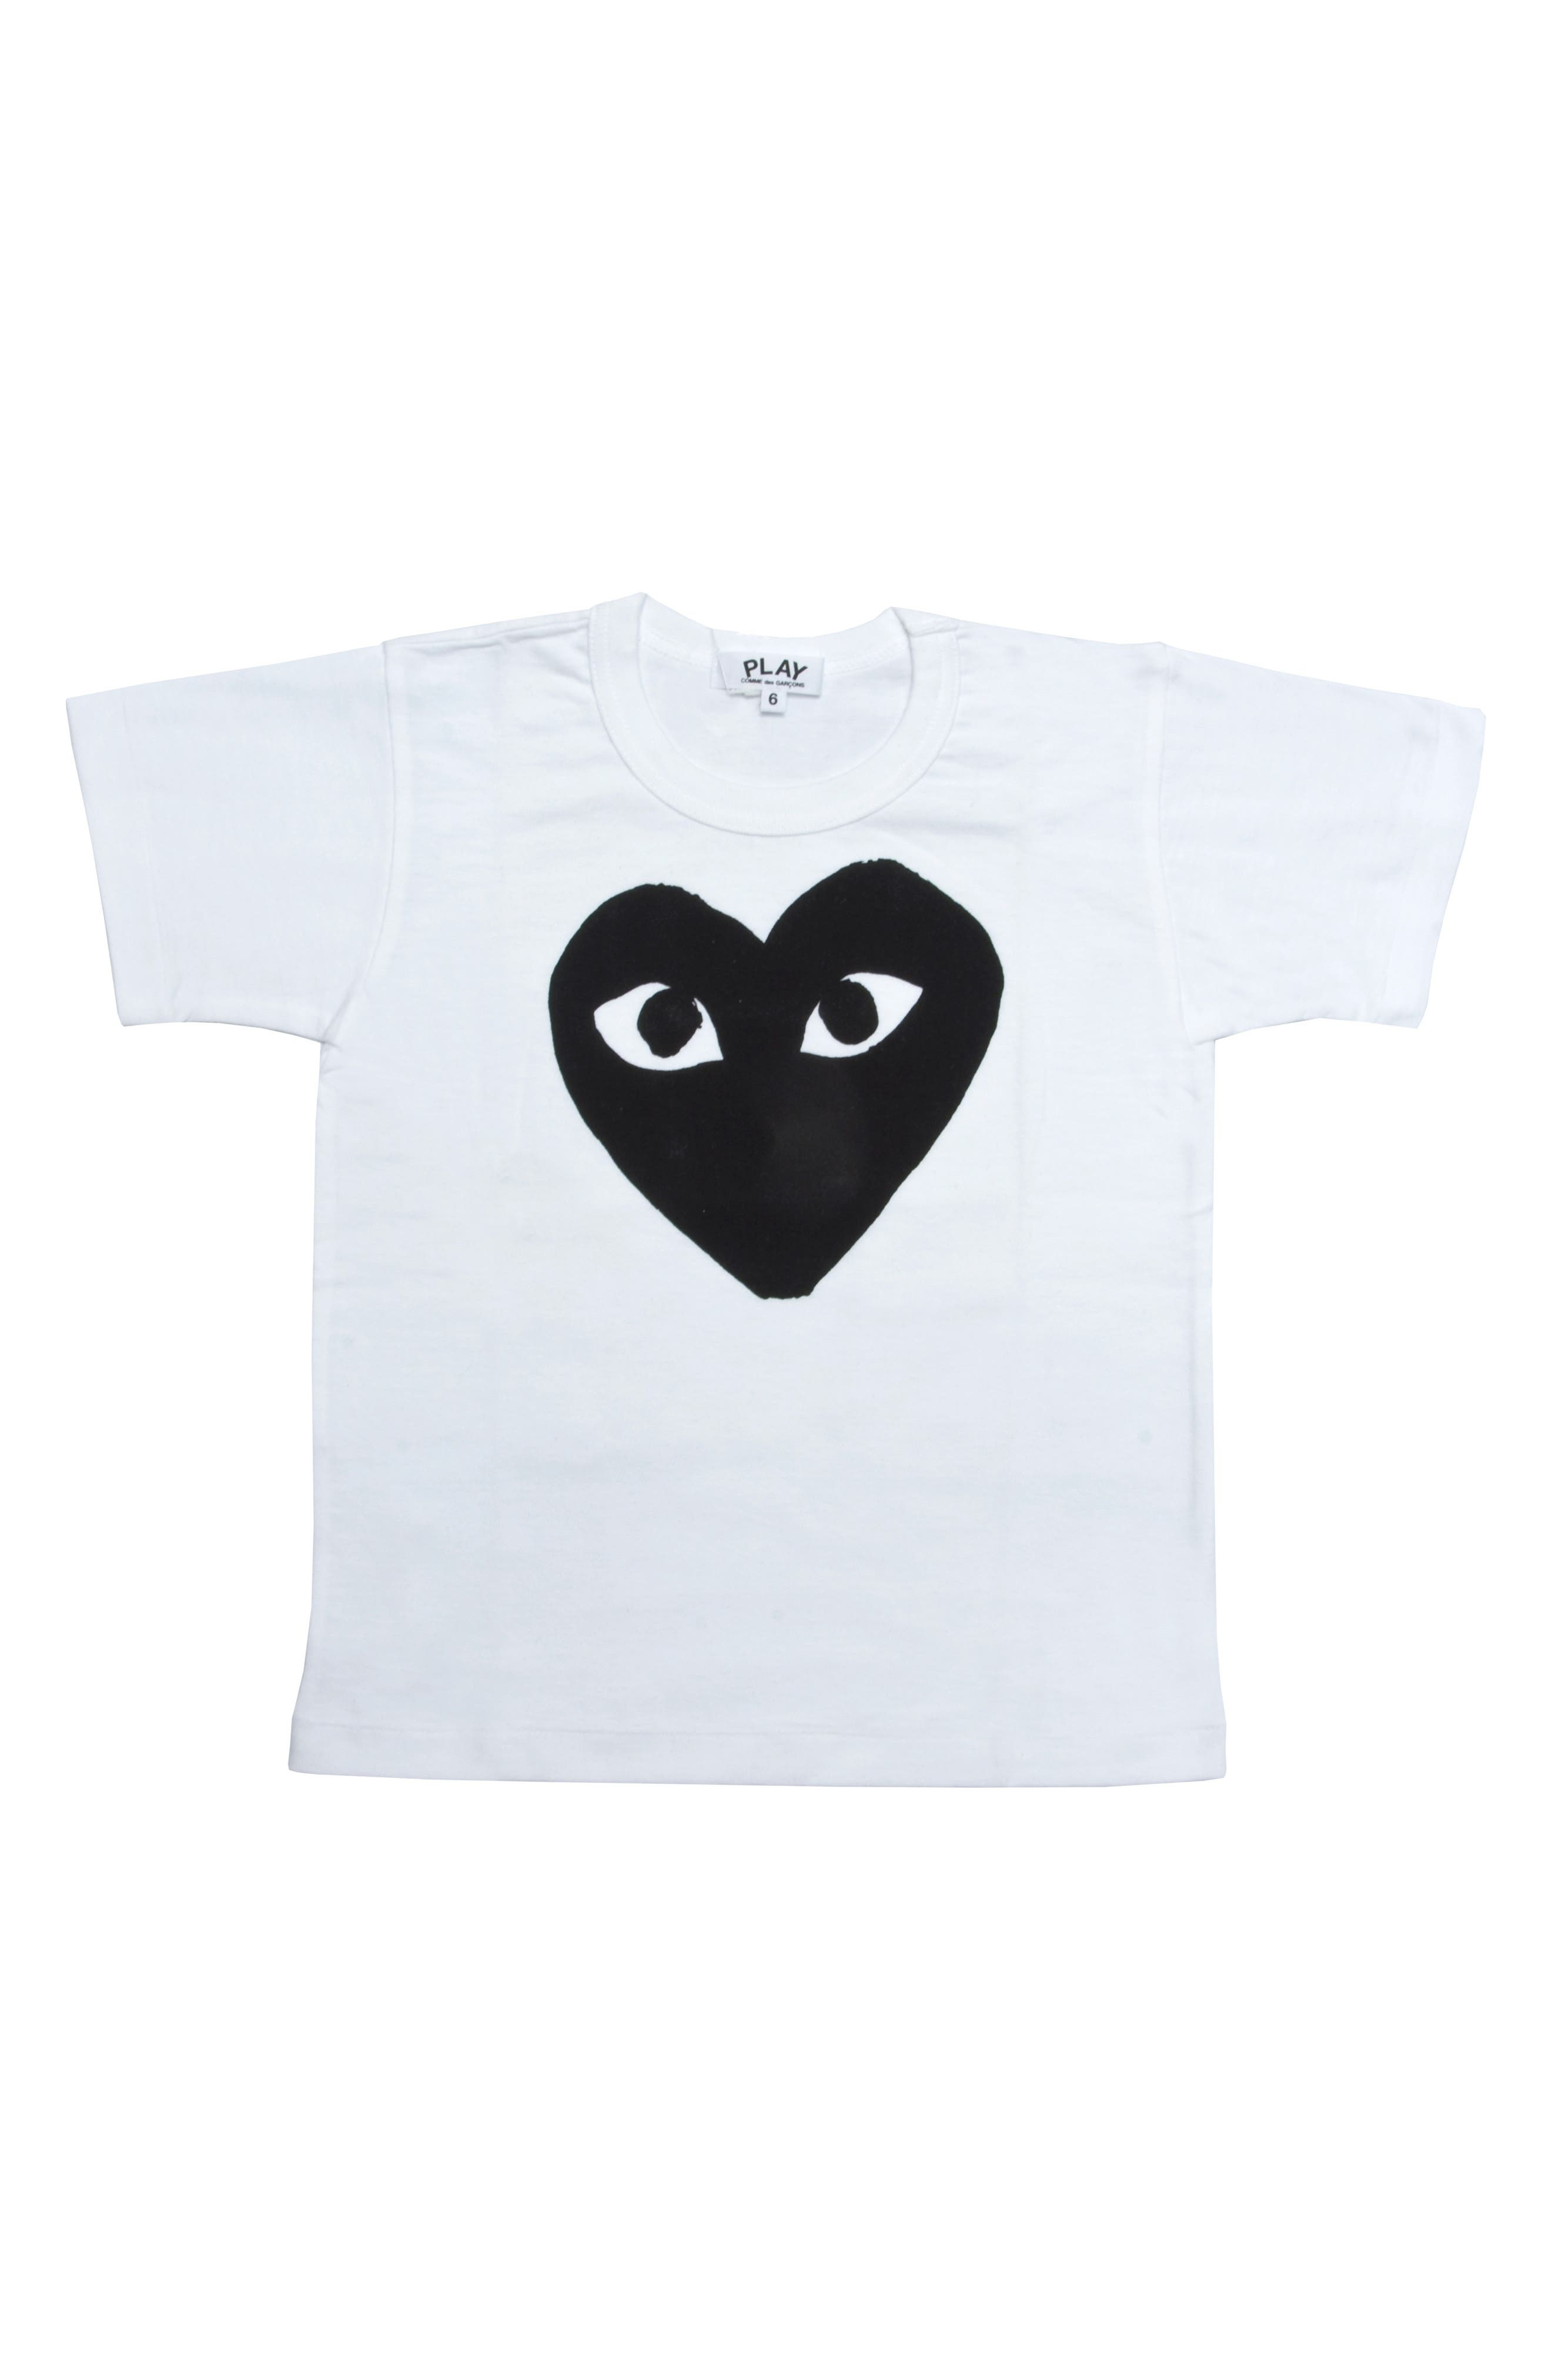 COMME DES GARÇONS PLAY Black Heart Graphic T-Shirt, Main, color, WHITE